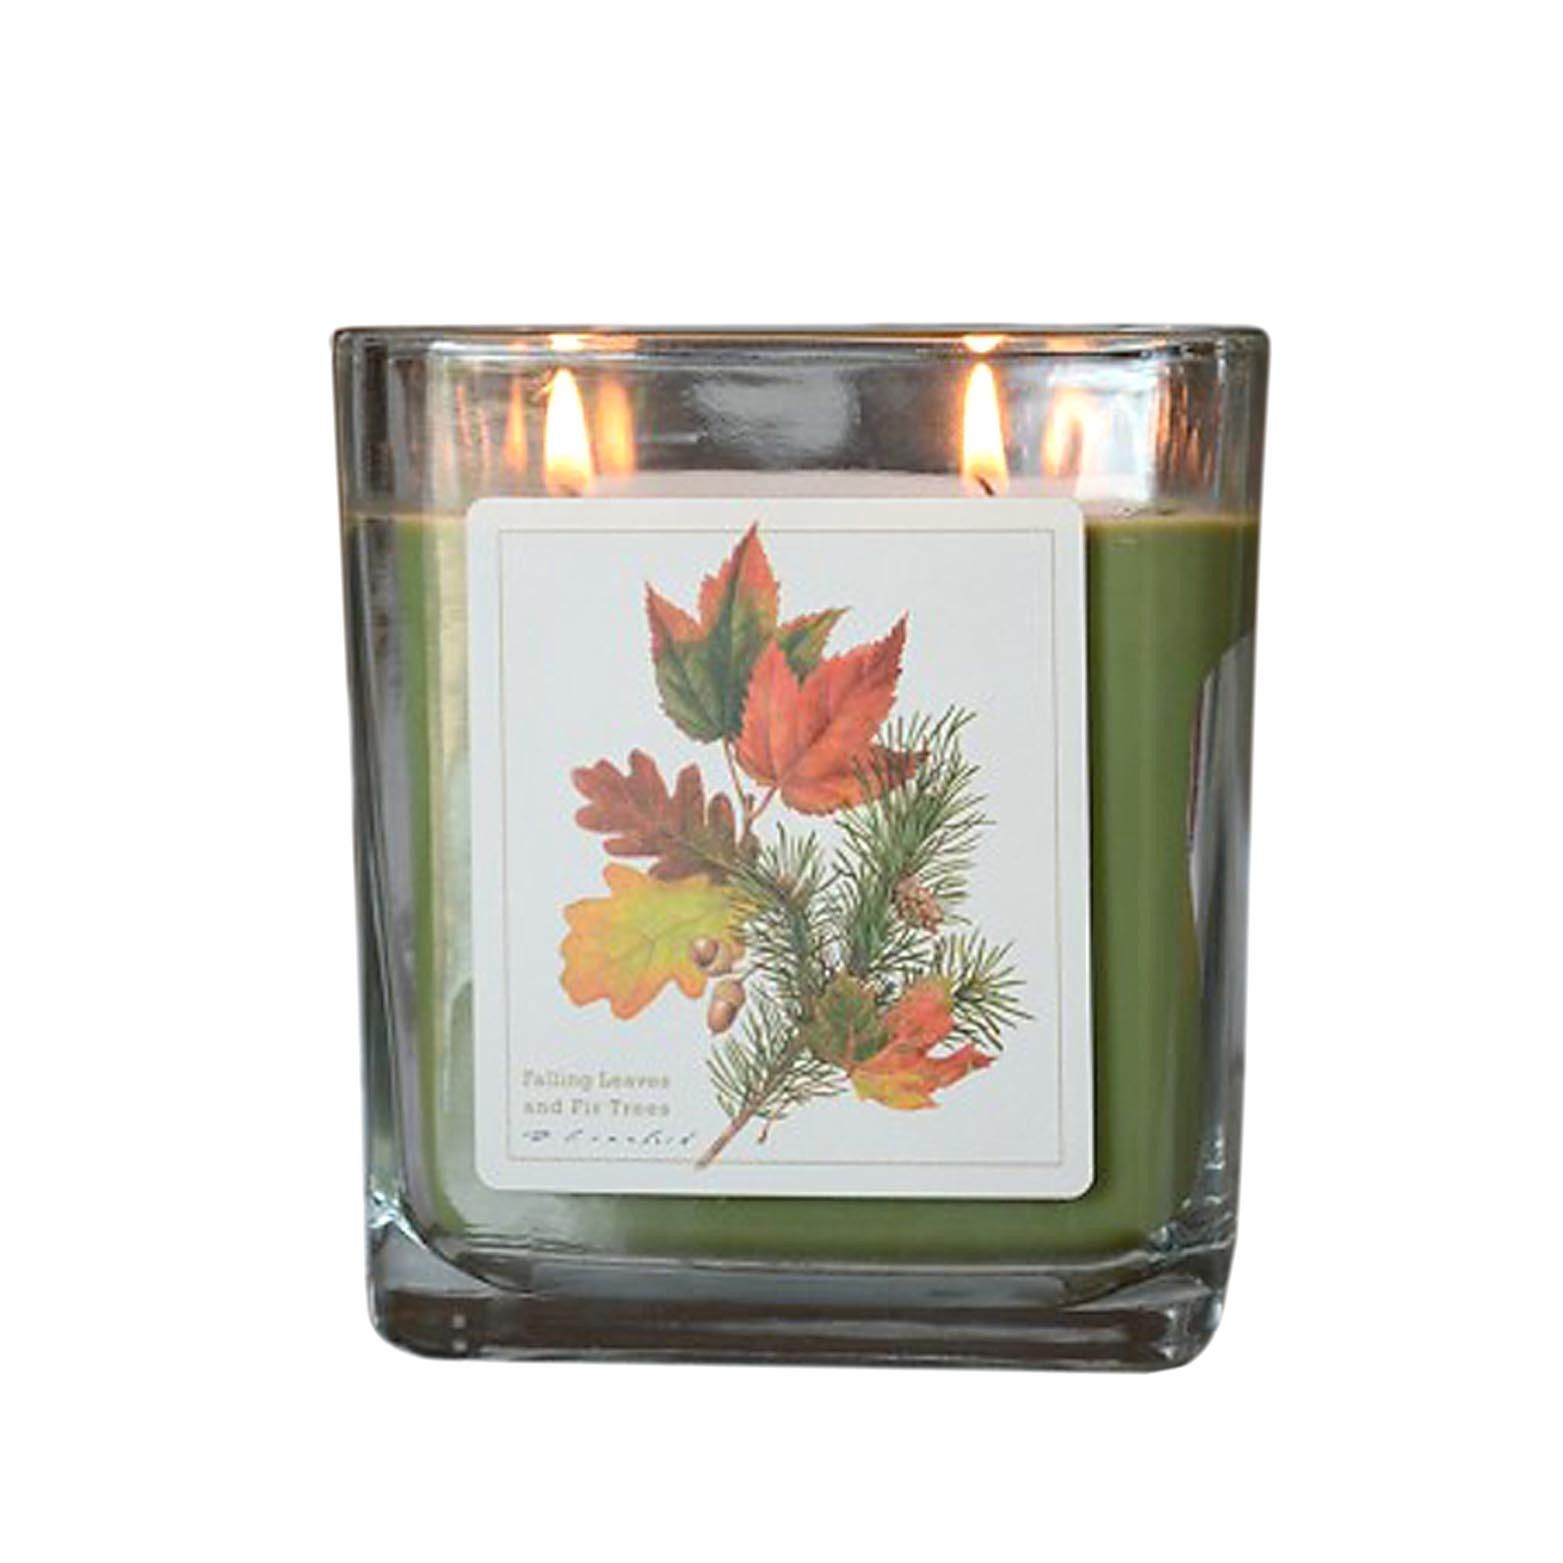 Falling Leaves and Fir Trees  Hand Poured Verdure Gift Boxed Soy Candle USA made